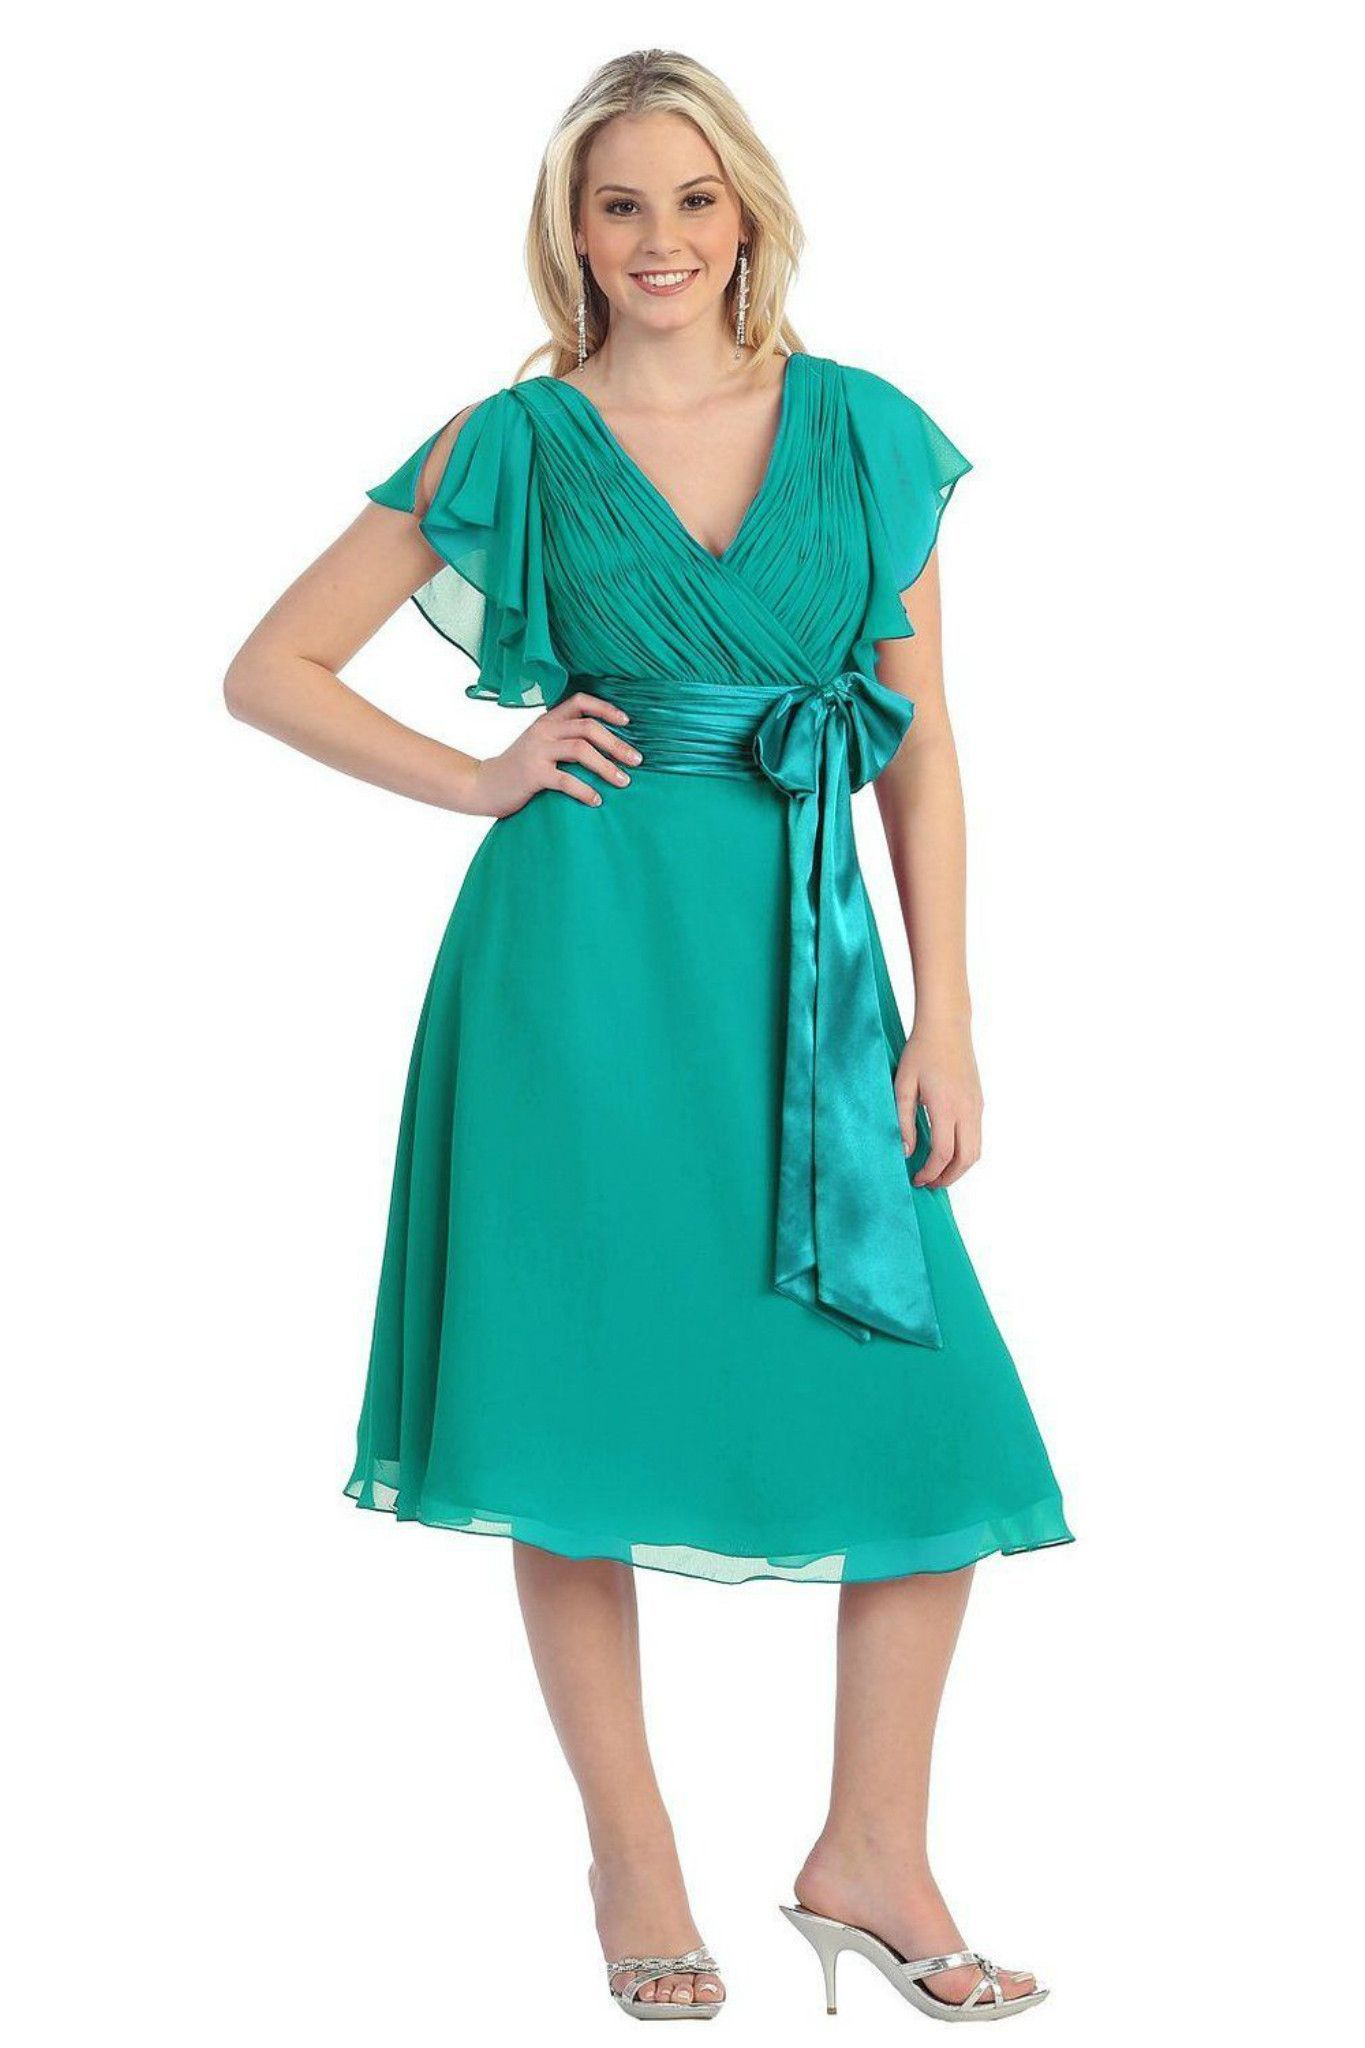 Simply Elegant Short Teal Green Mother of the Bride Dress Plus Size ...